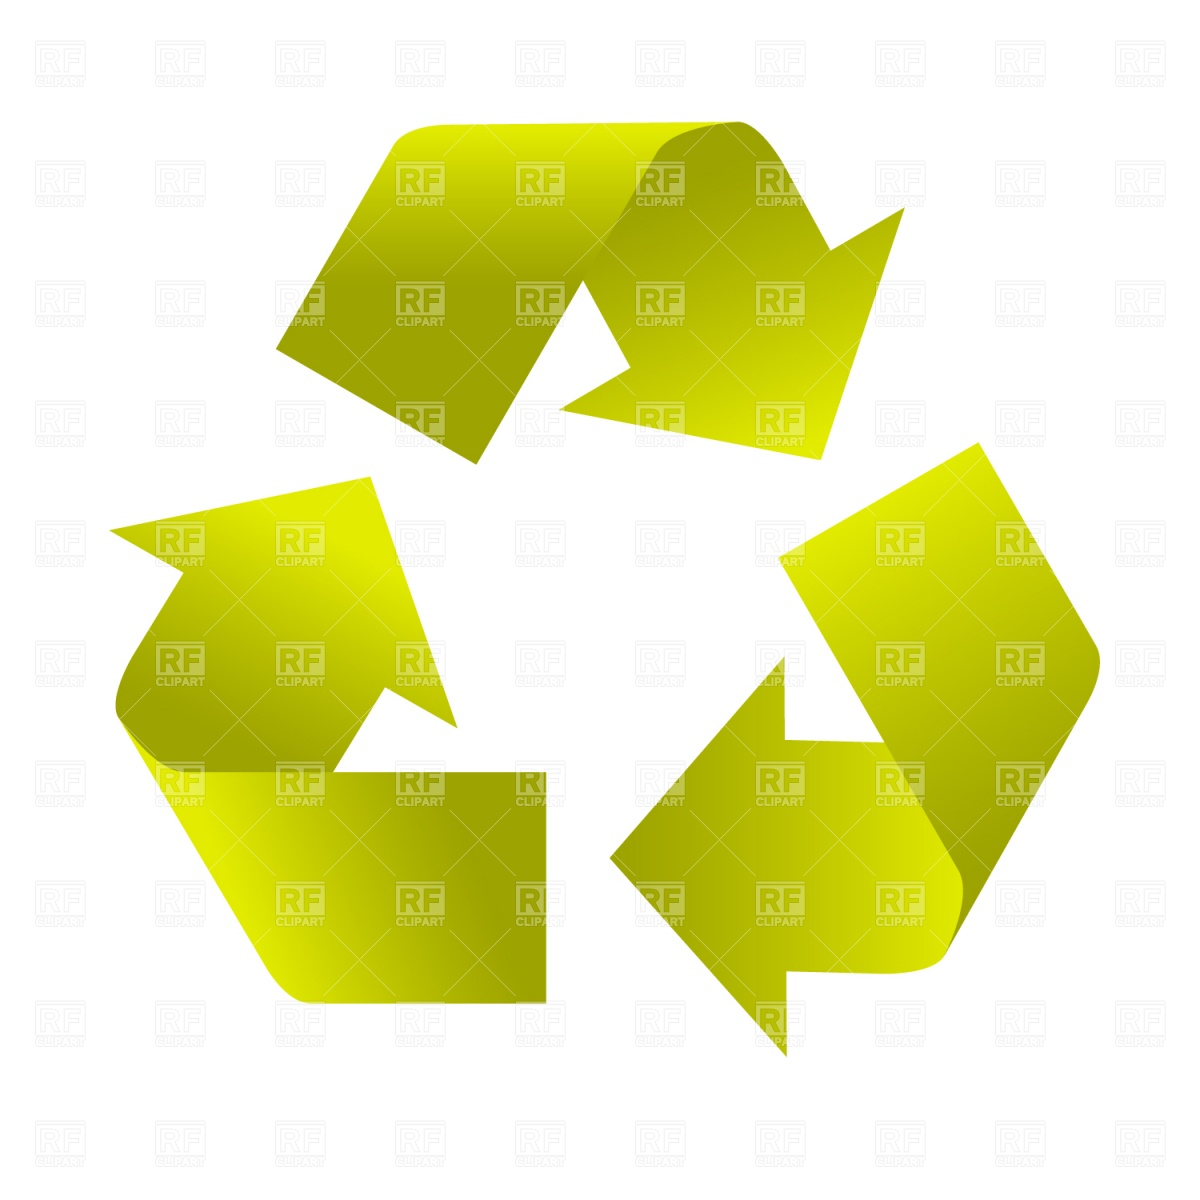 Recycle symbol clipart free download best recycle symbol clipart 1200x1200 recycle sign royalty free vector clip art image biocorpaavc